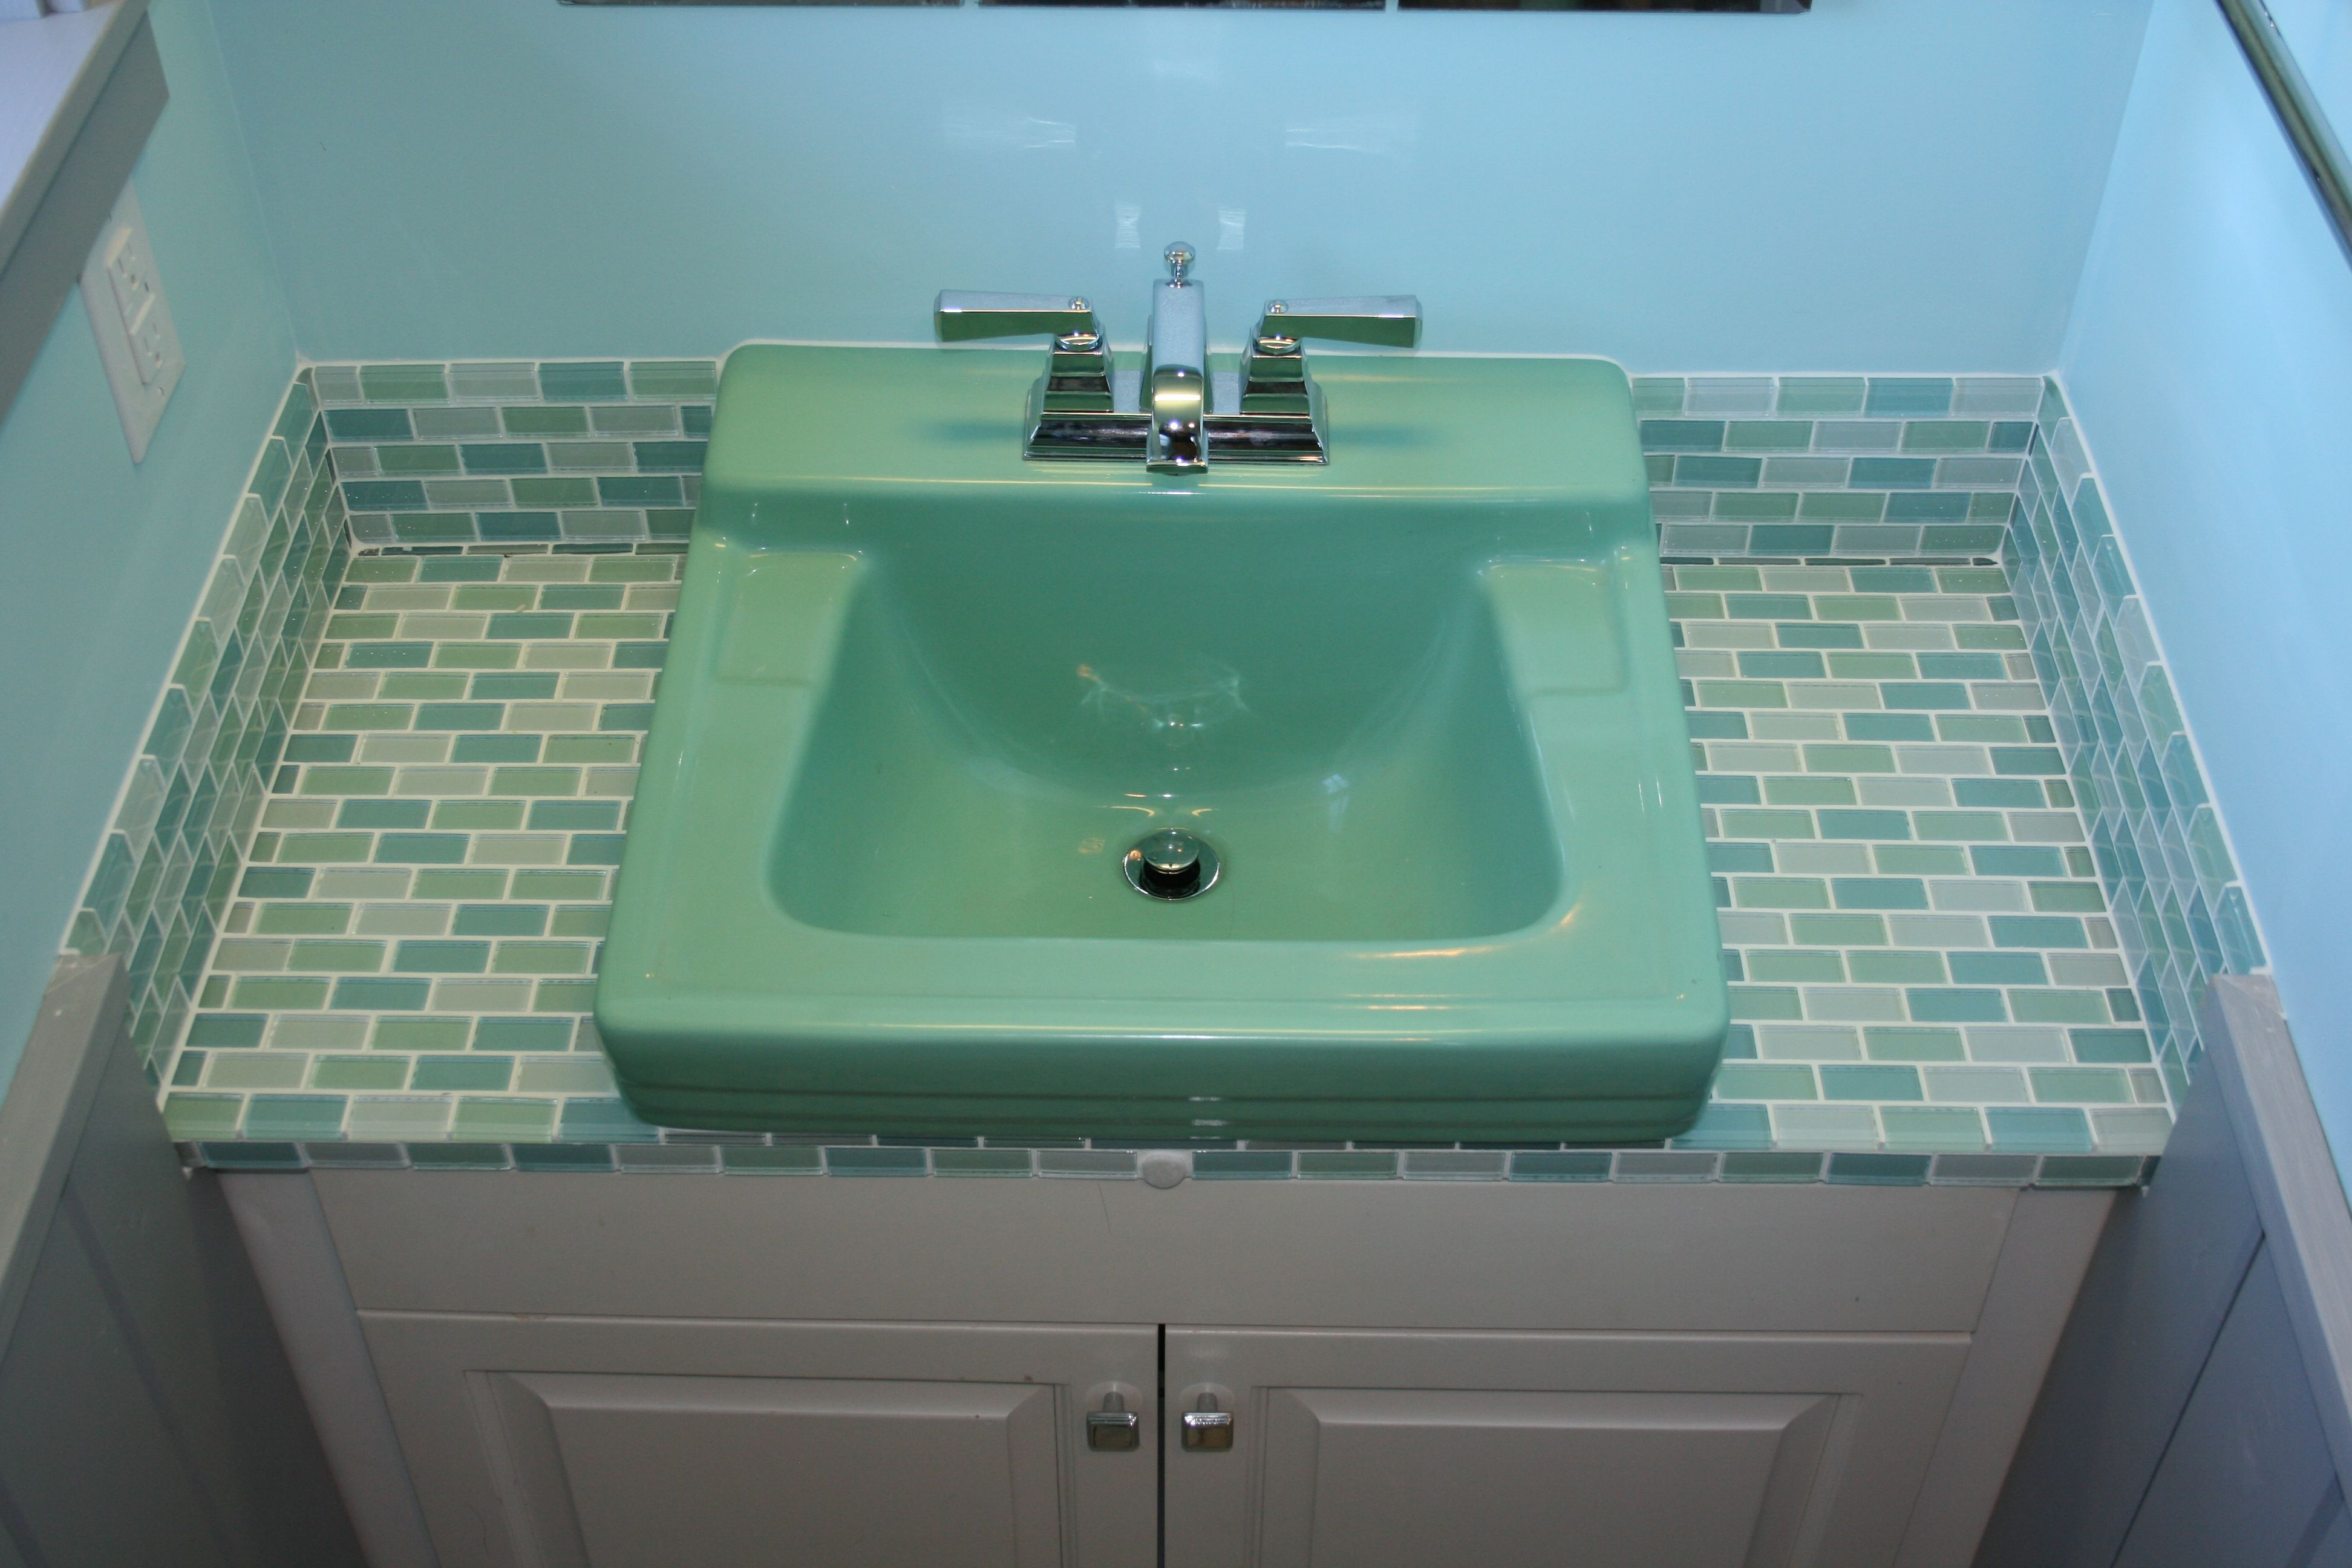 Thinking about this for my bathroom; different color tile though ...